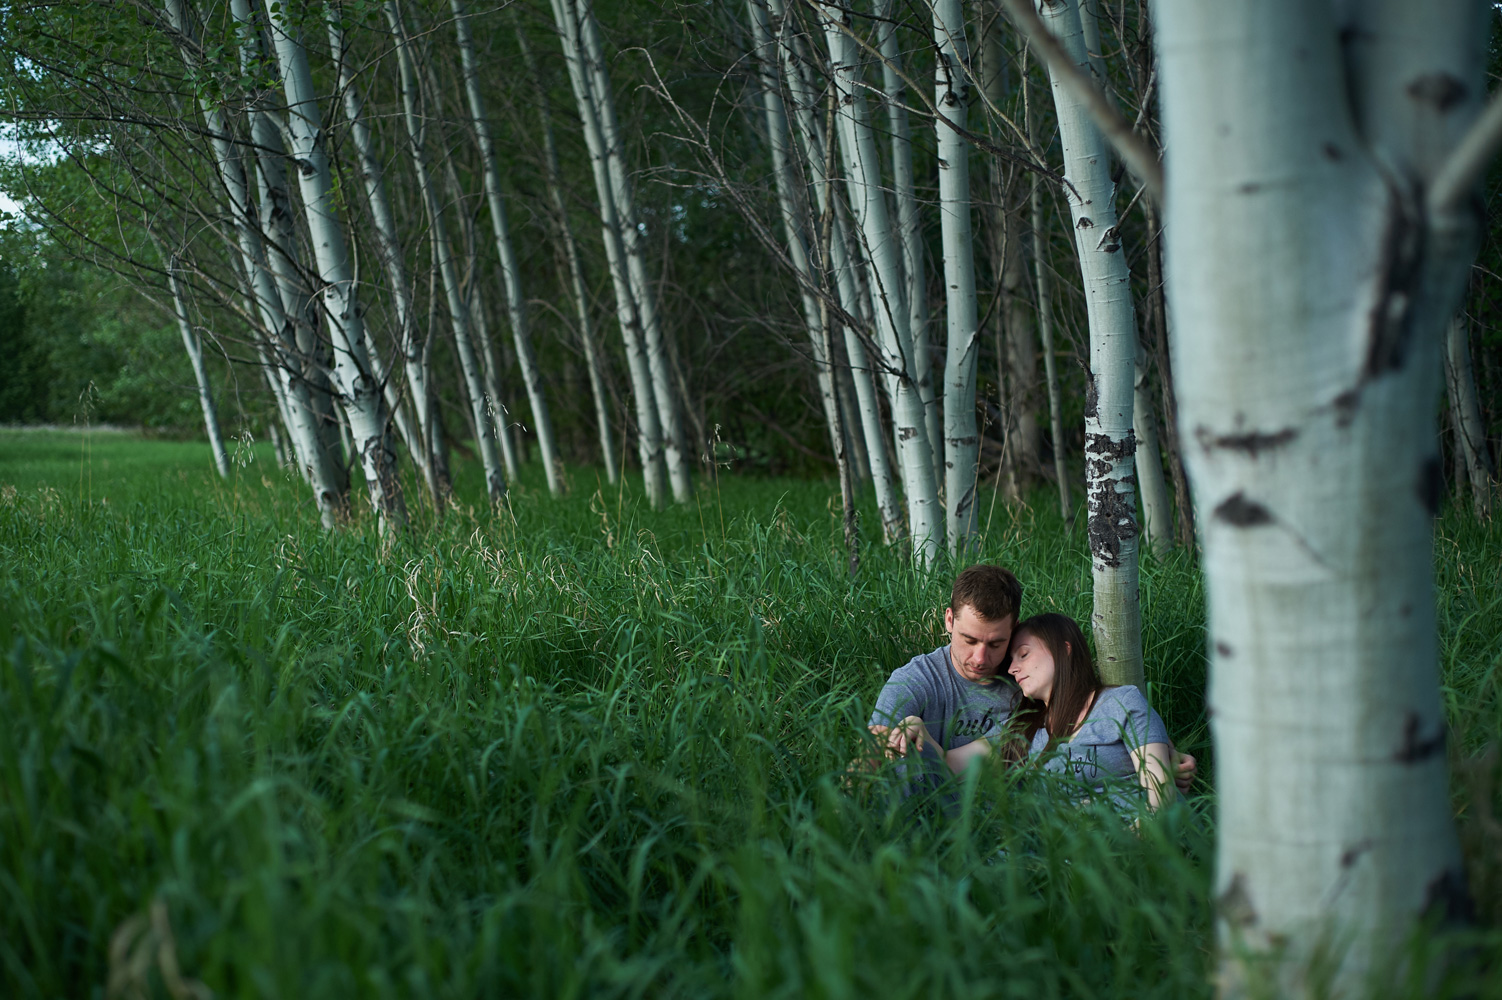 engaged-couple-sitting-in-long-grass-by-a-grove-of-birch-trees.jpg